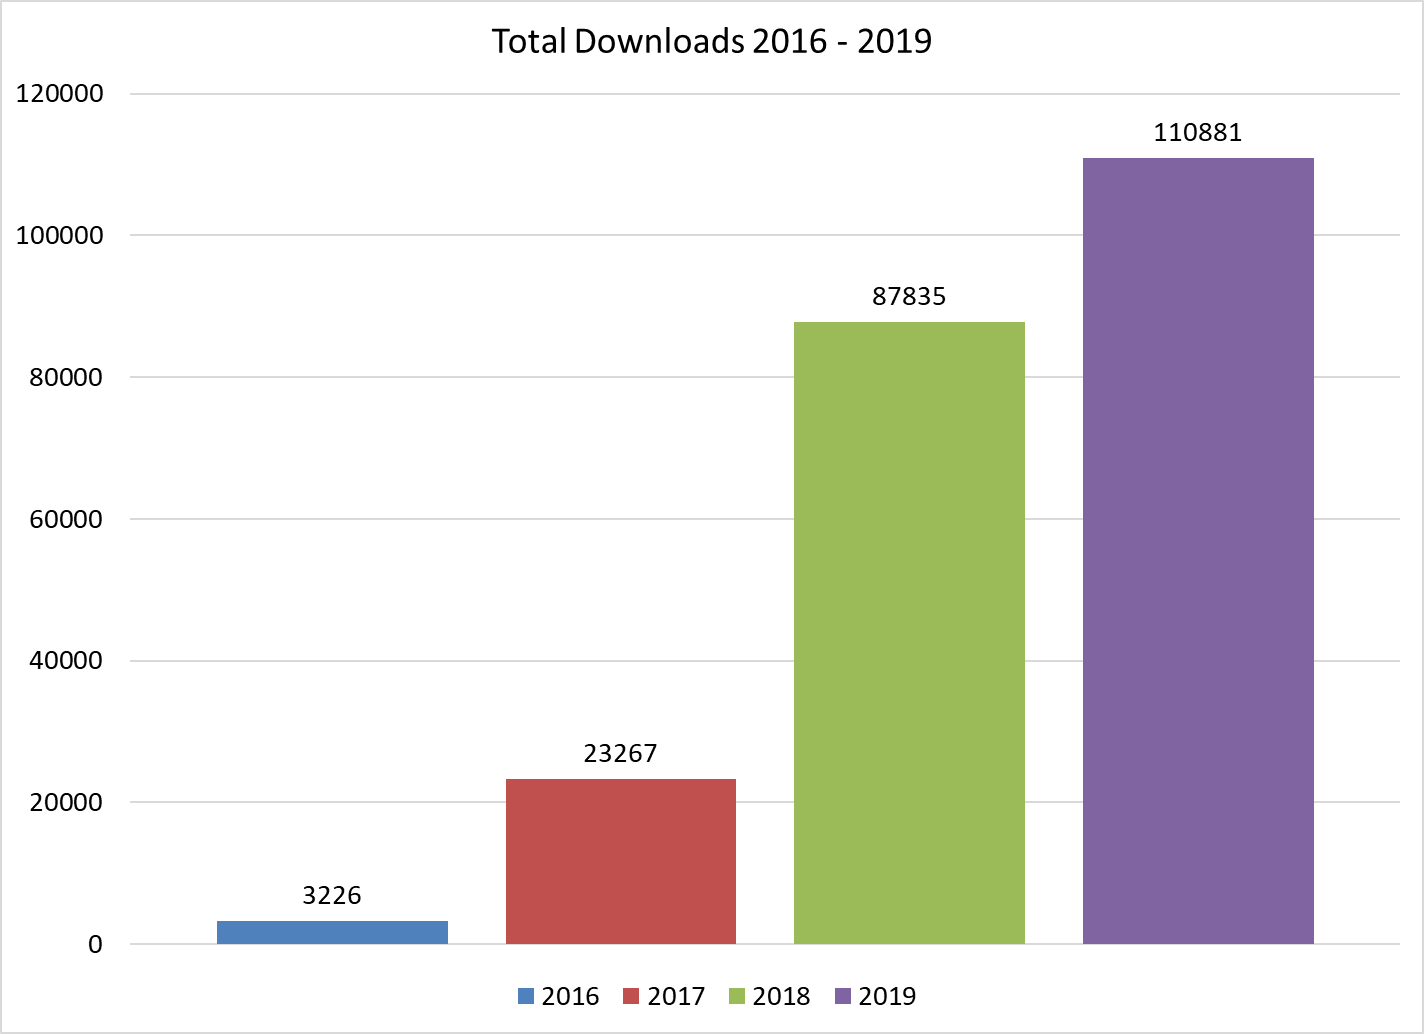 Total Downloads Compared Yearly from 2016 - 2019 bar chart